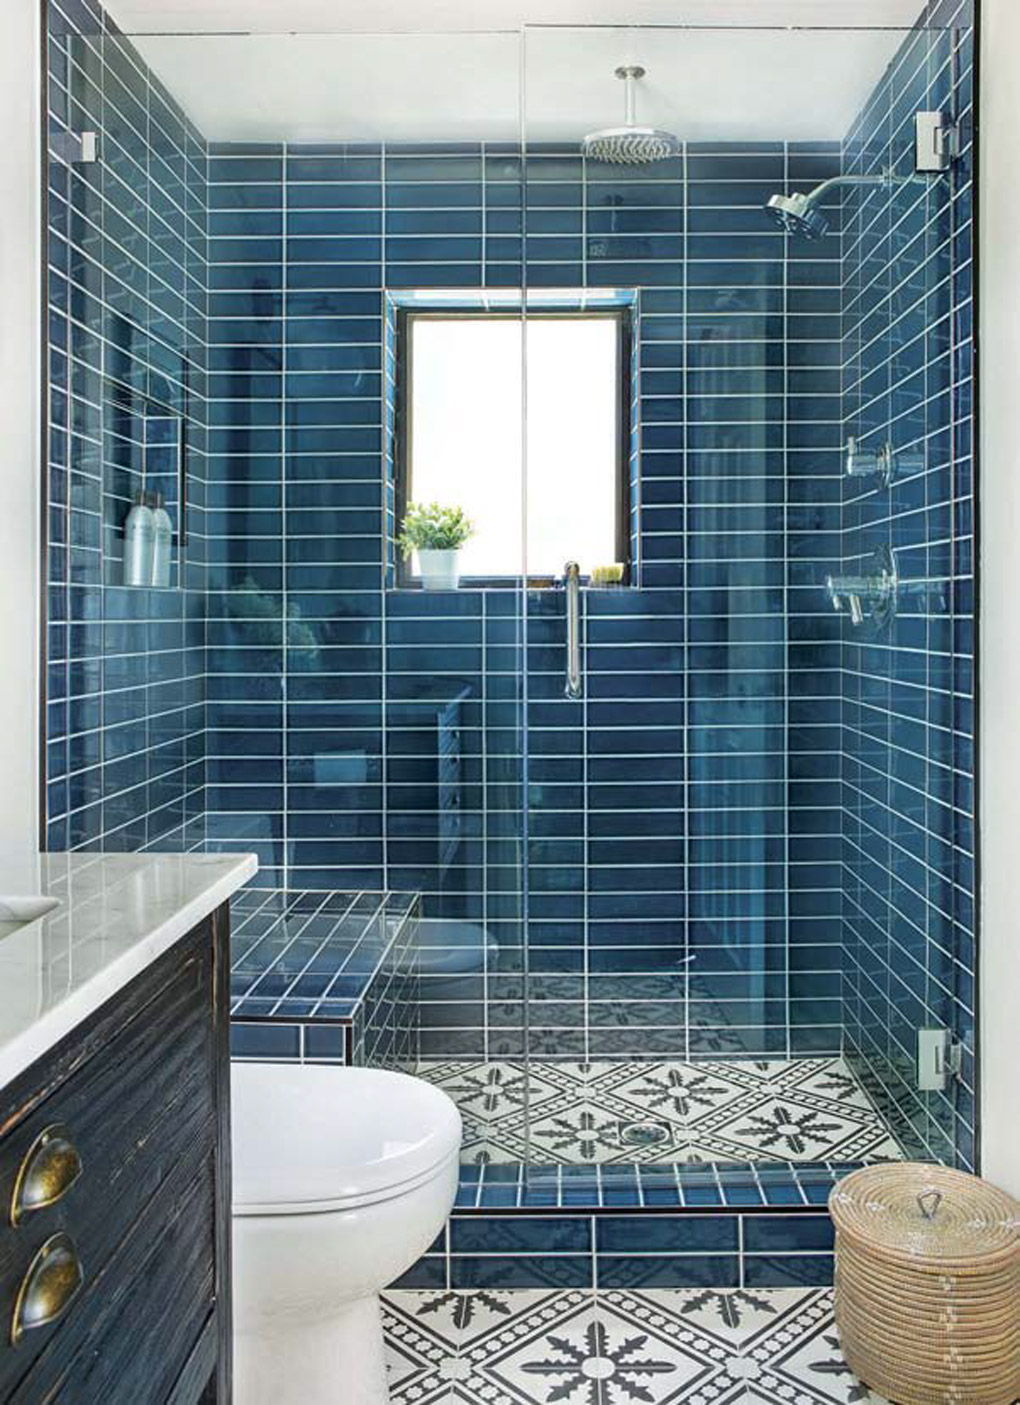 California cottage with a brightly lit large shower fully tiled in teal rectangle tiles with ornate flooring.